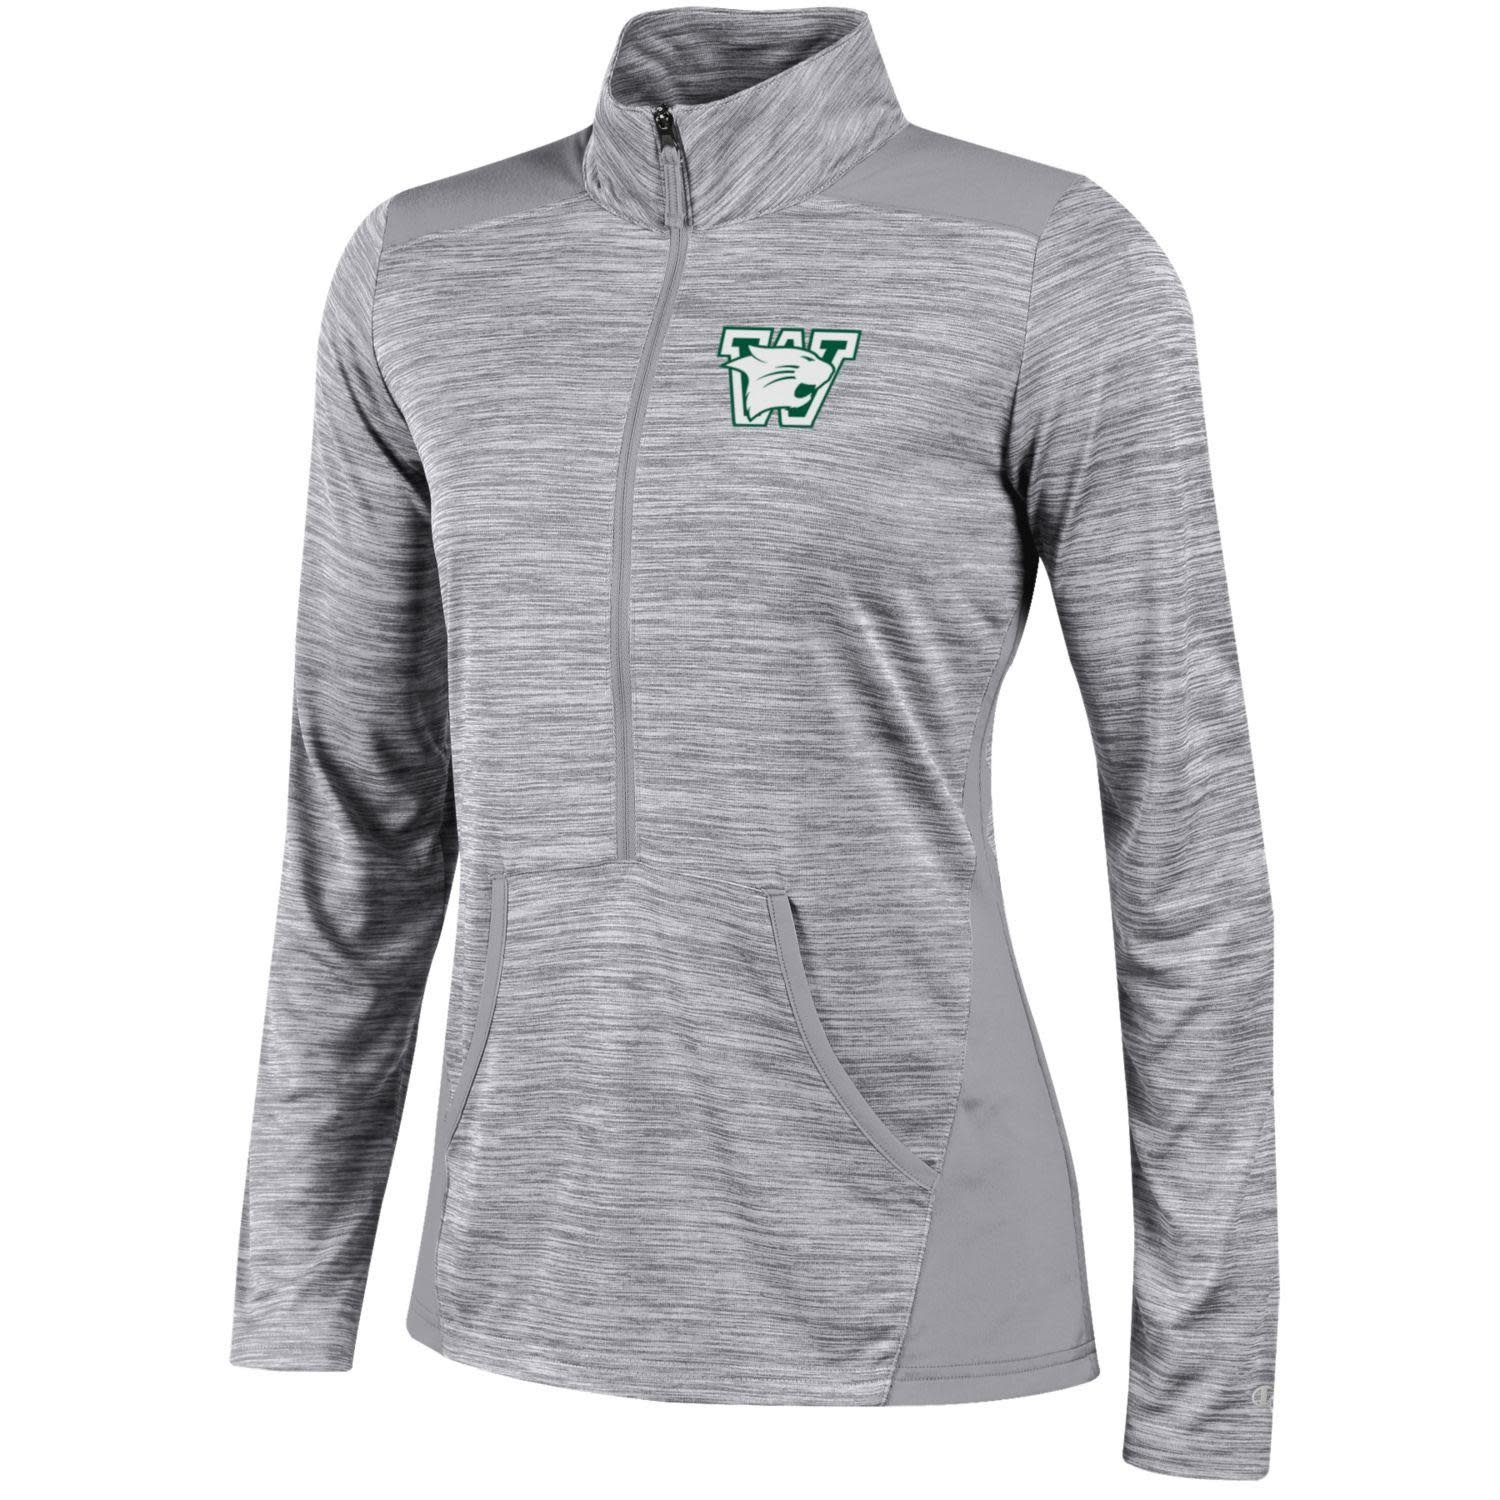 Pullover: Champion Ladies 1/2 Zip Active Gray w/Pockets and Logo